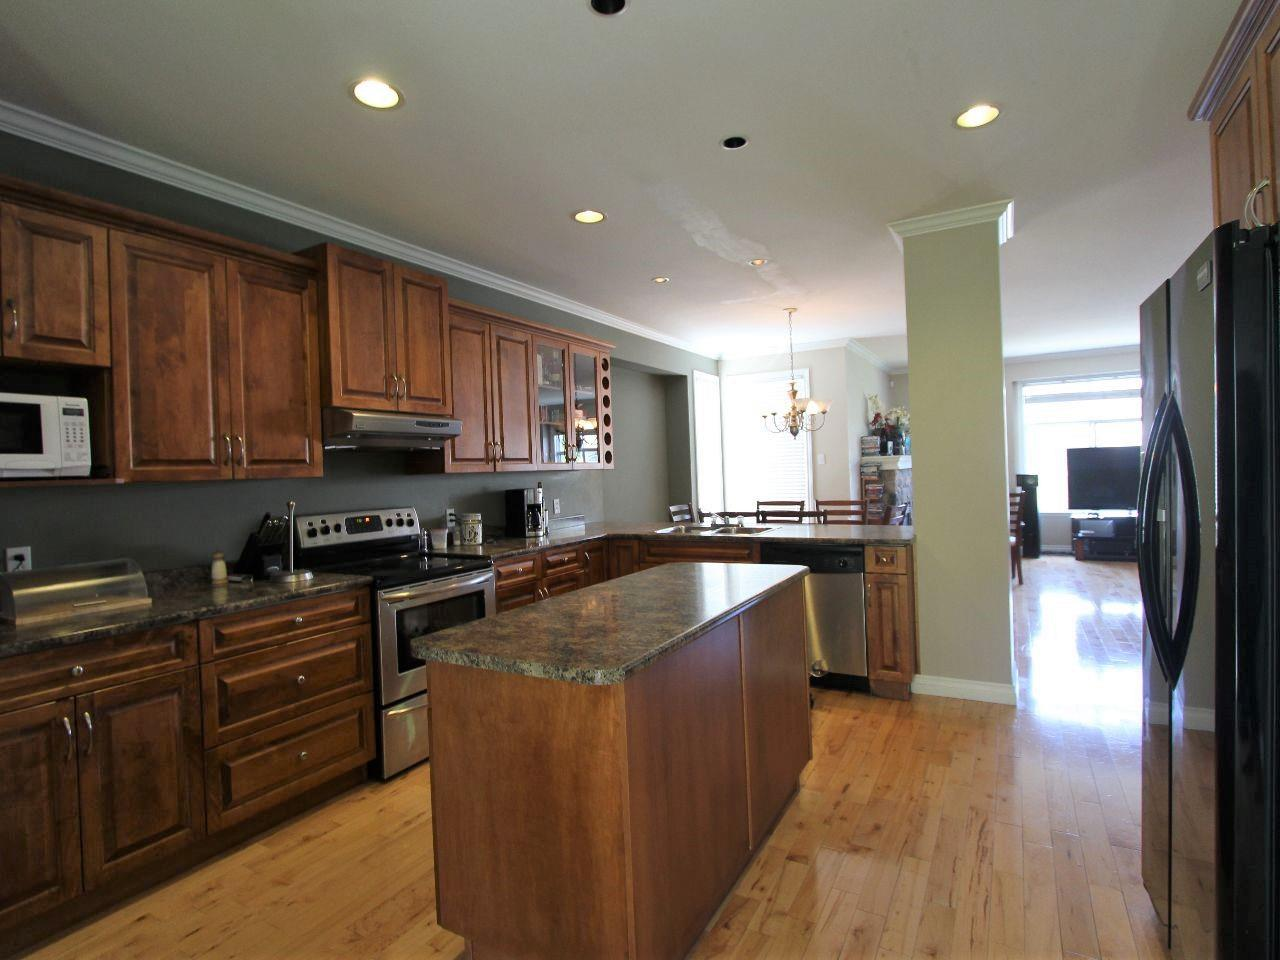 Photo 11: 30456 HERITAGE Drive in Abbotsford: Abbotsford West House for sale : MLS® # R2066678